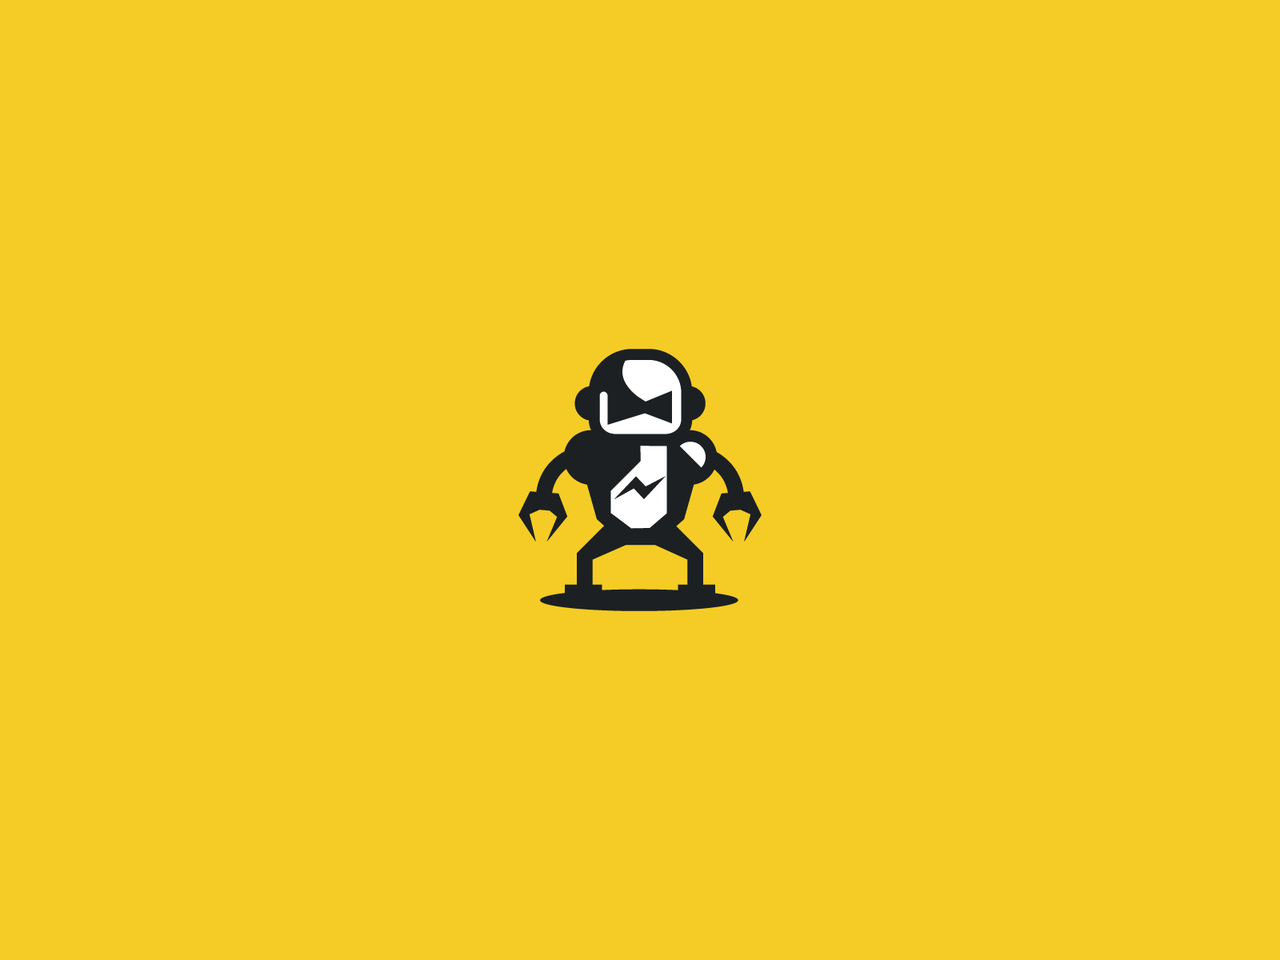 bad robot on a yellow background logo